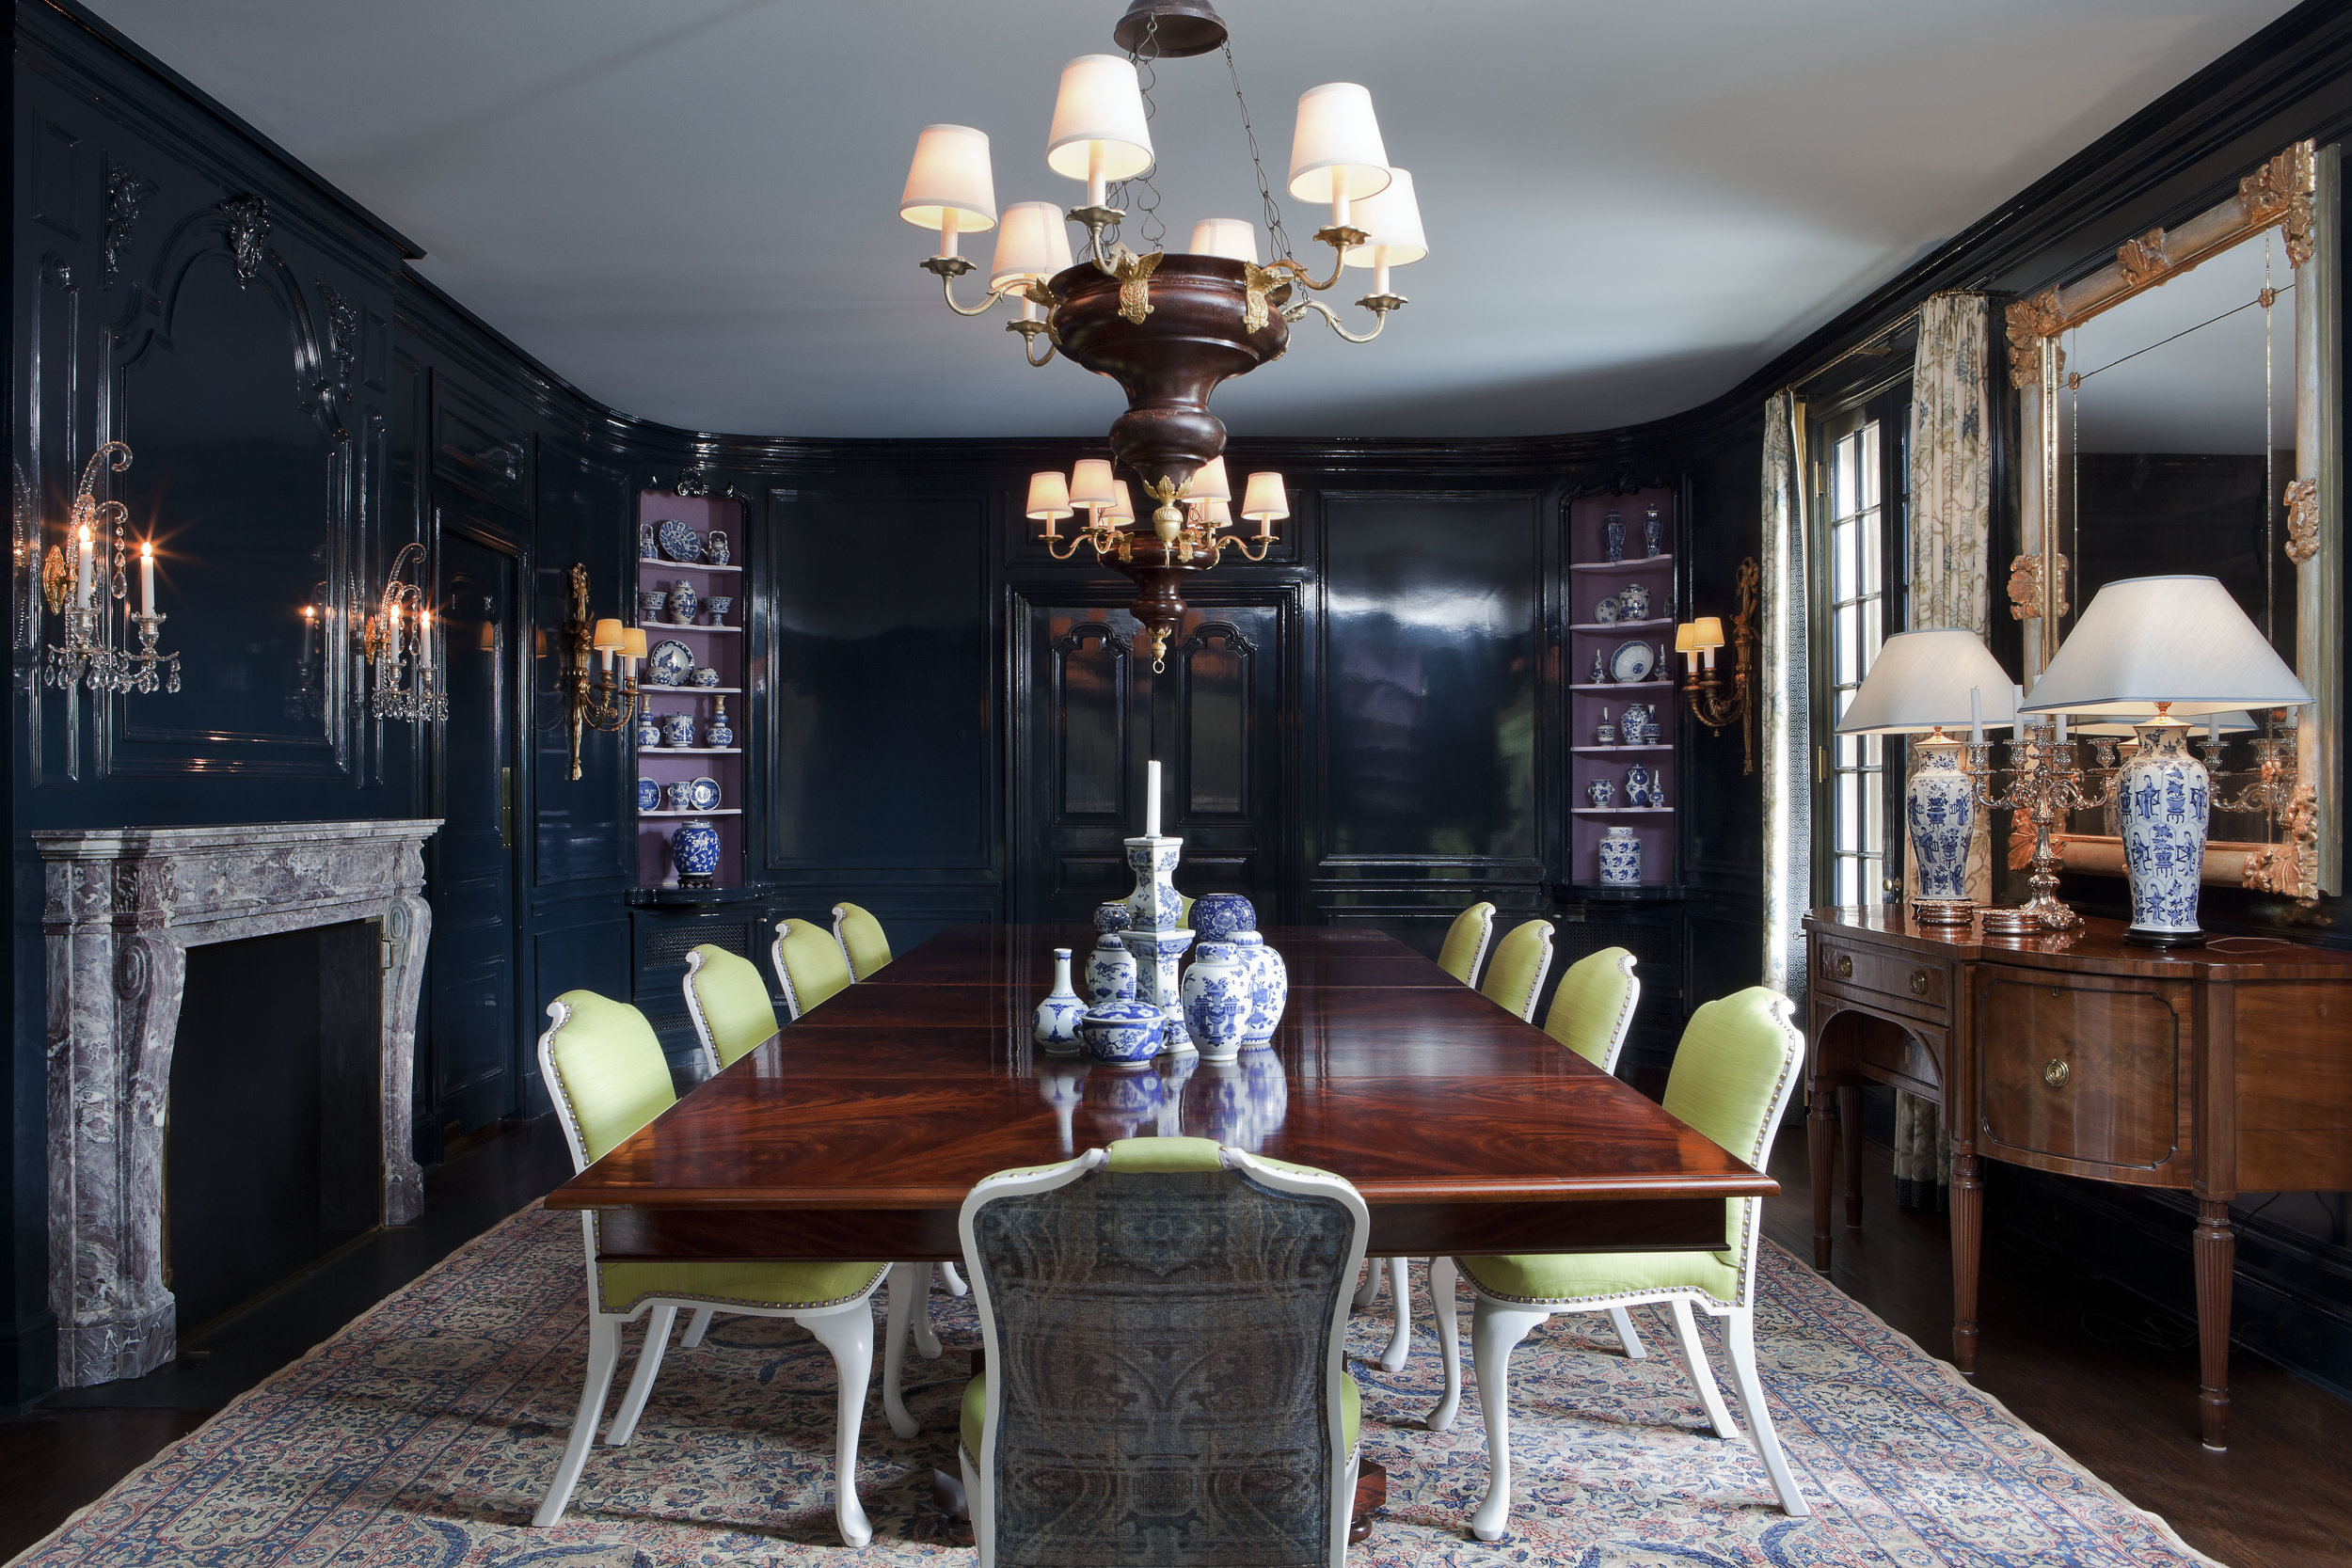 Highlighting the wife's collection of blue-and-white porcelain was a priority in the dining room. The room's walls are coated in a deep indigo lacquer, and the corner niches are lined in lilac burlap. To give the space versatility, Isbell designed two square tables, which can be expanded to create one large table that seats 24.